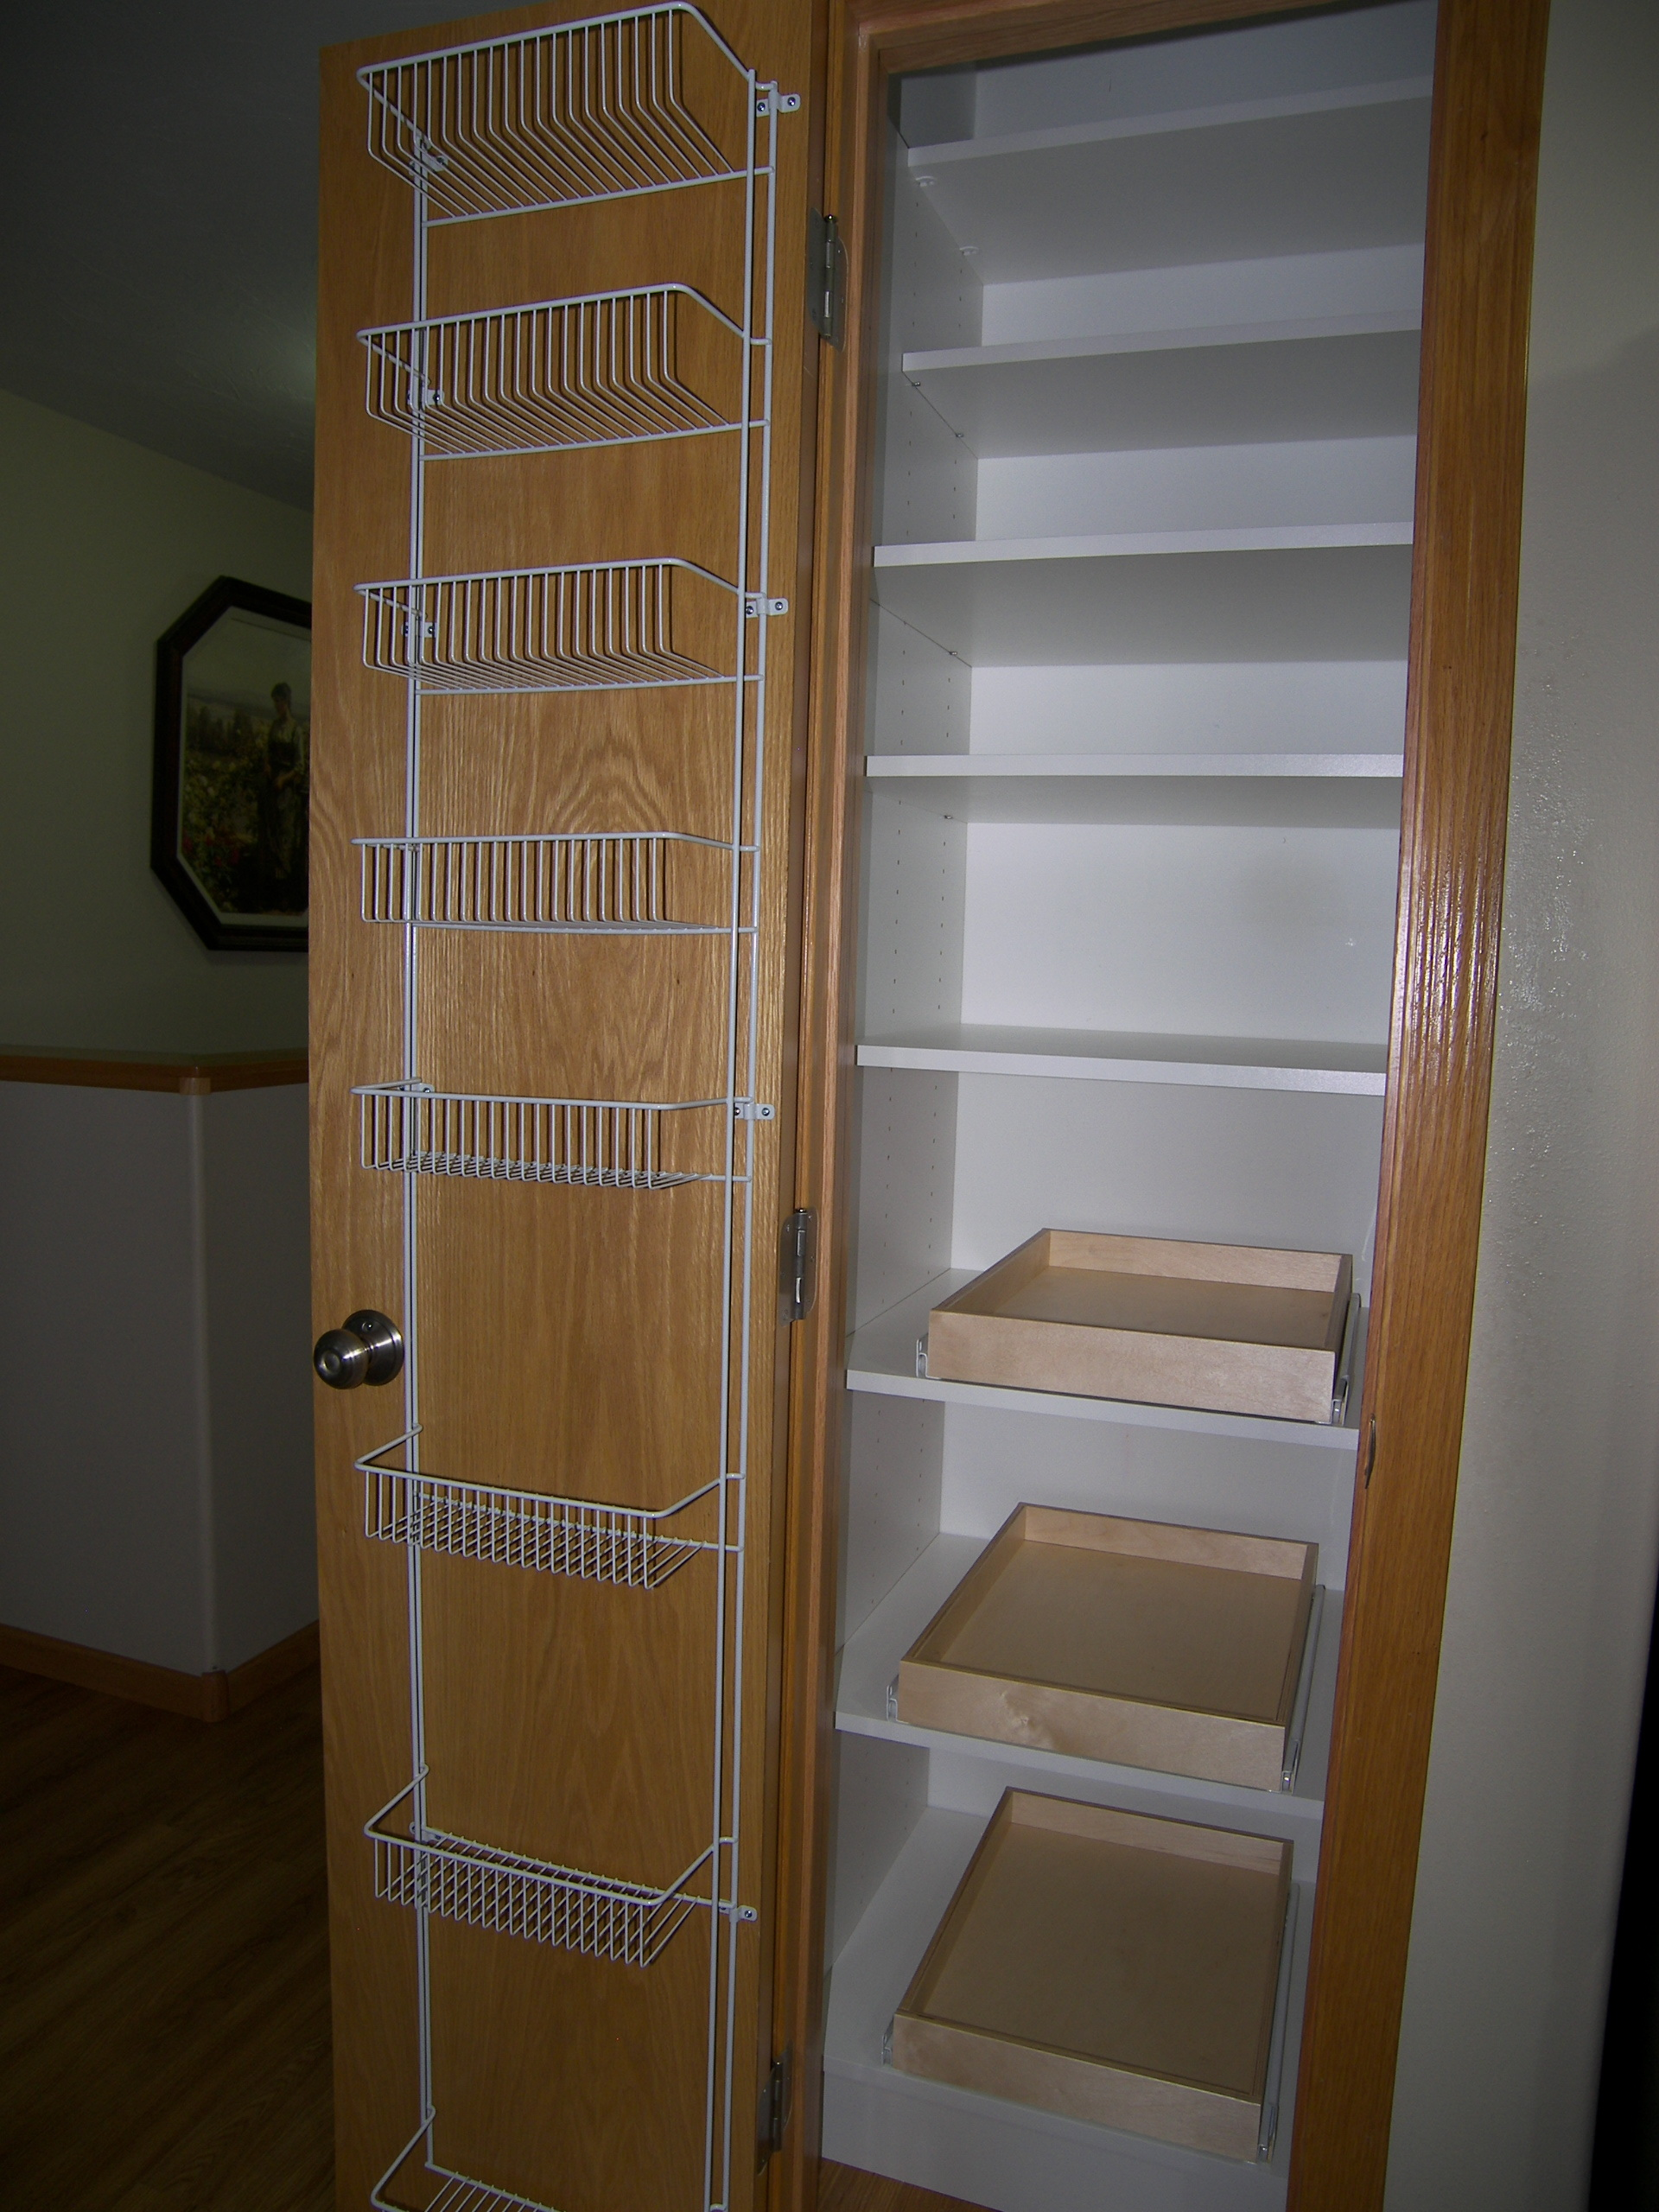 pantry pullouts.JPG